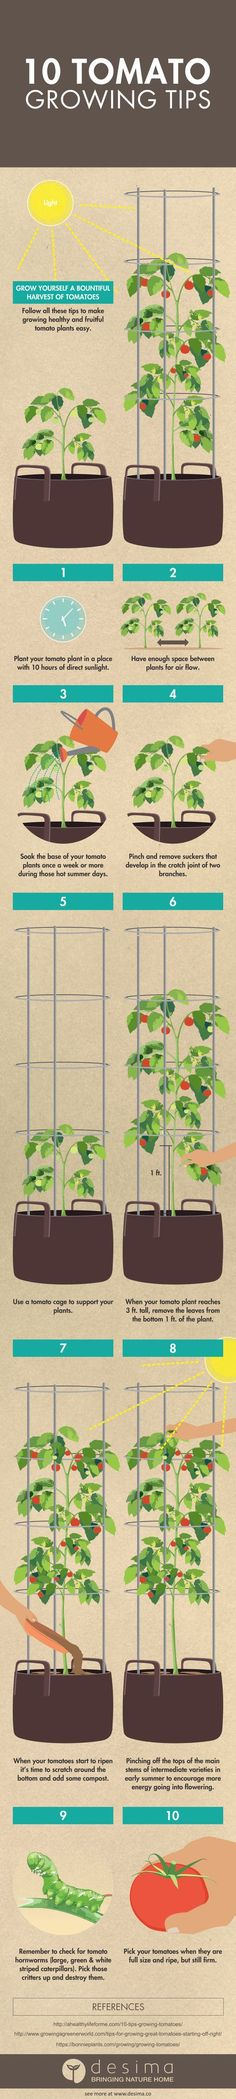 Follow all these tips to make growing healthy and fruitful tomato plants  easy.    1.Plant your tomato plant in a place with 10 hours of direct sunlight.  2.Have enough space between plants for air flow.  3.Soak the base of your tomato plants once a week or more during those hot  summer days.  4.Pinch and remove suckers that develop in the crotch joint of two  branches.  5.Use a tomato cage to support your plants.  6.When your tomato plant reaches 3 ft. tall, remove the leaves from the…